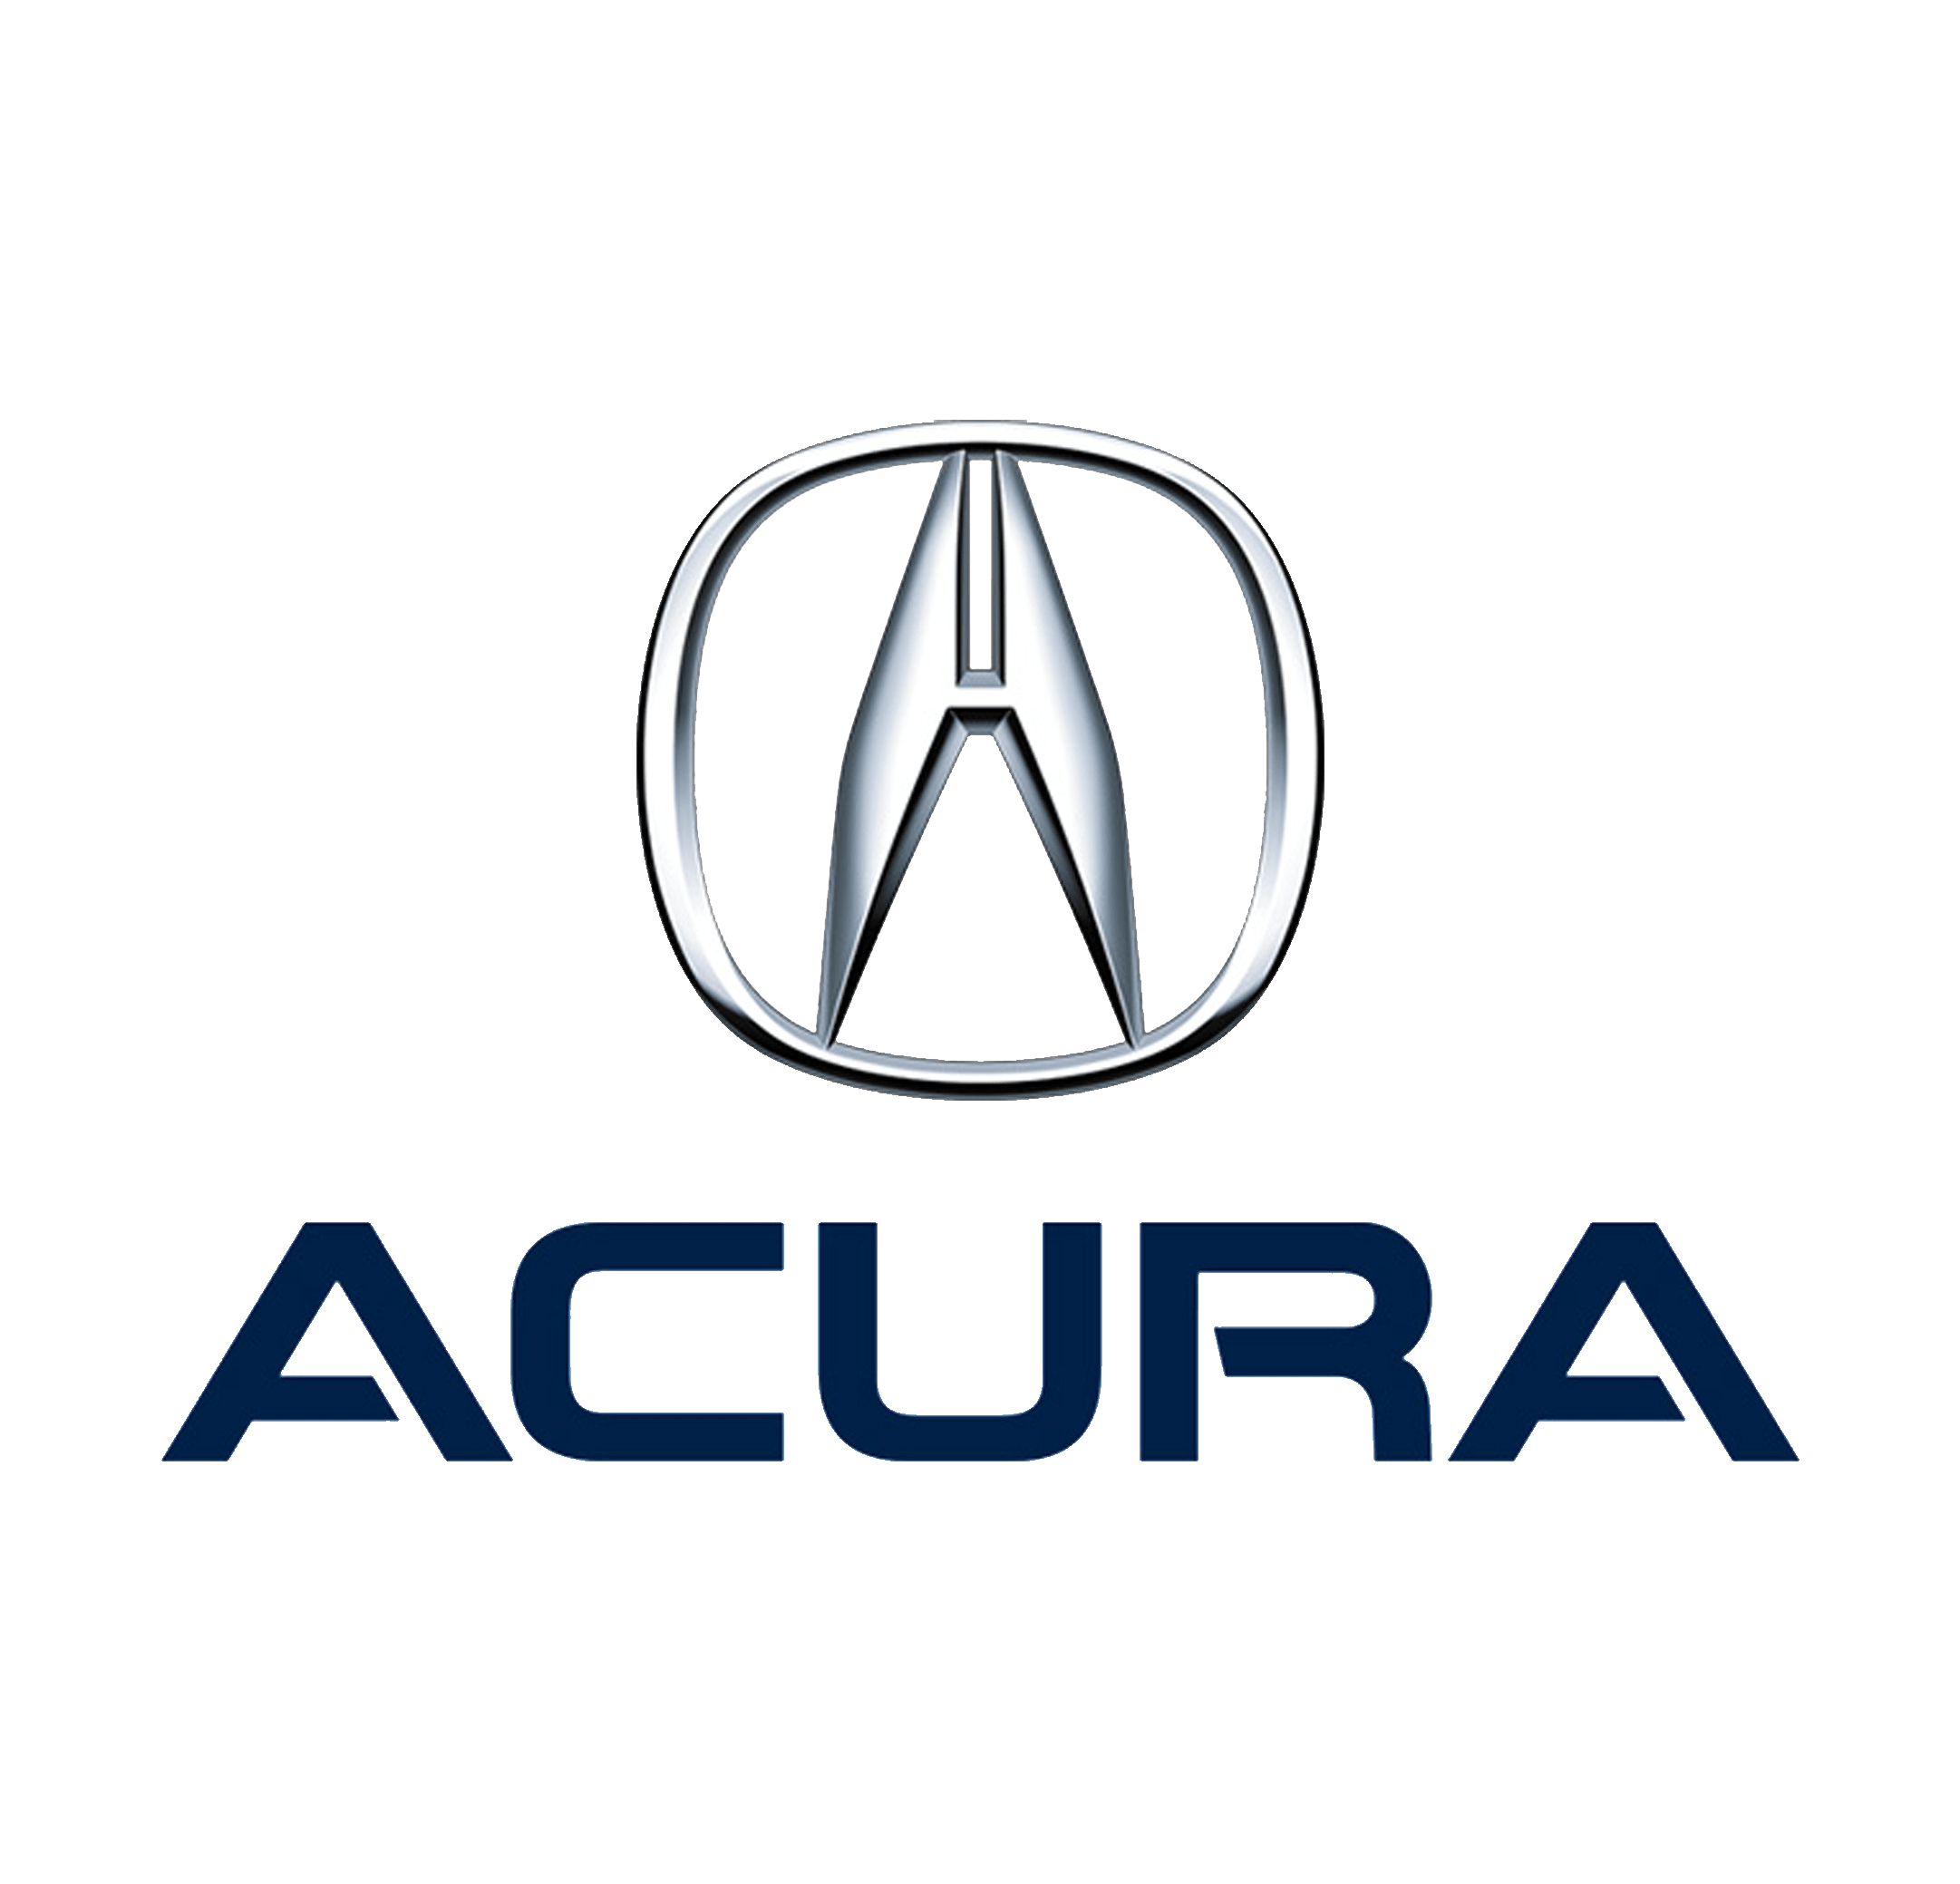 ACURA-min.png